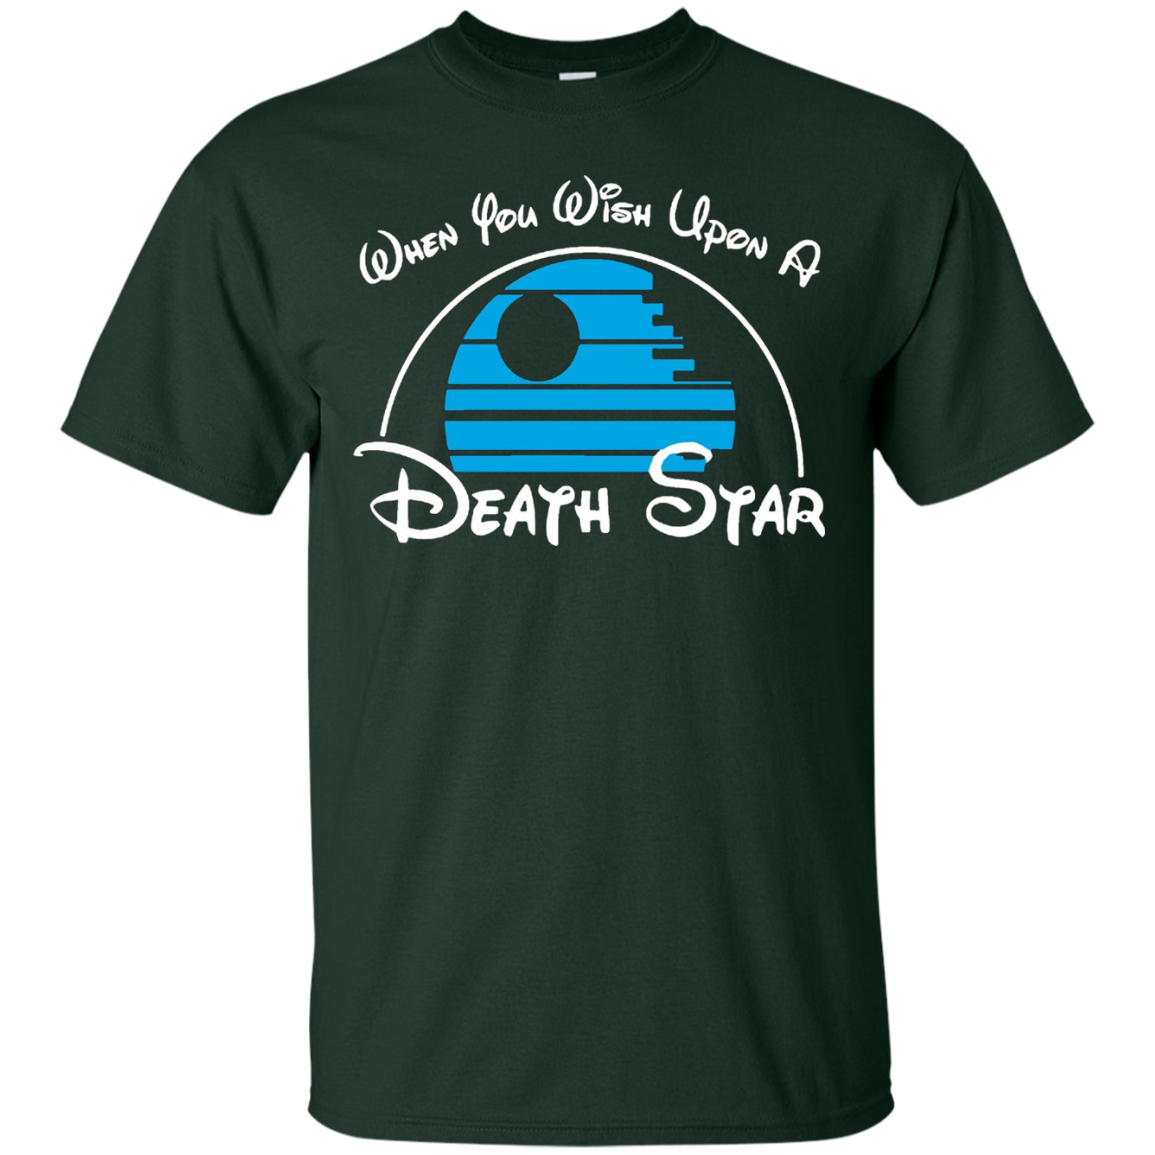 When You Wish Upon A Death Star T-Shirt